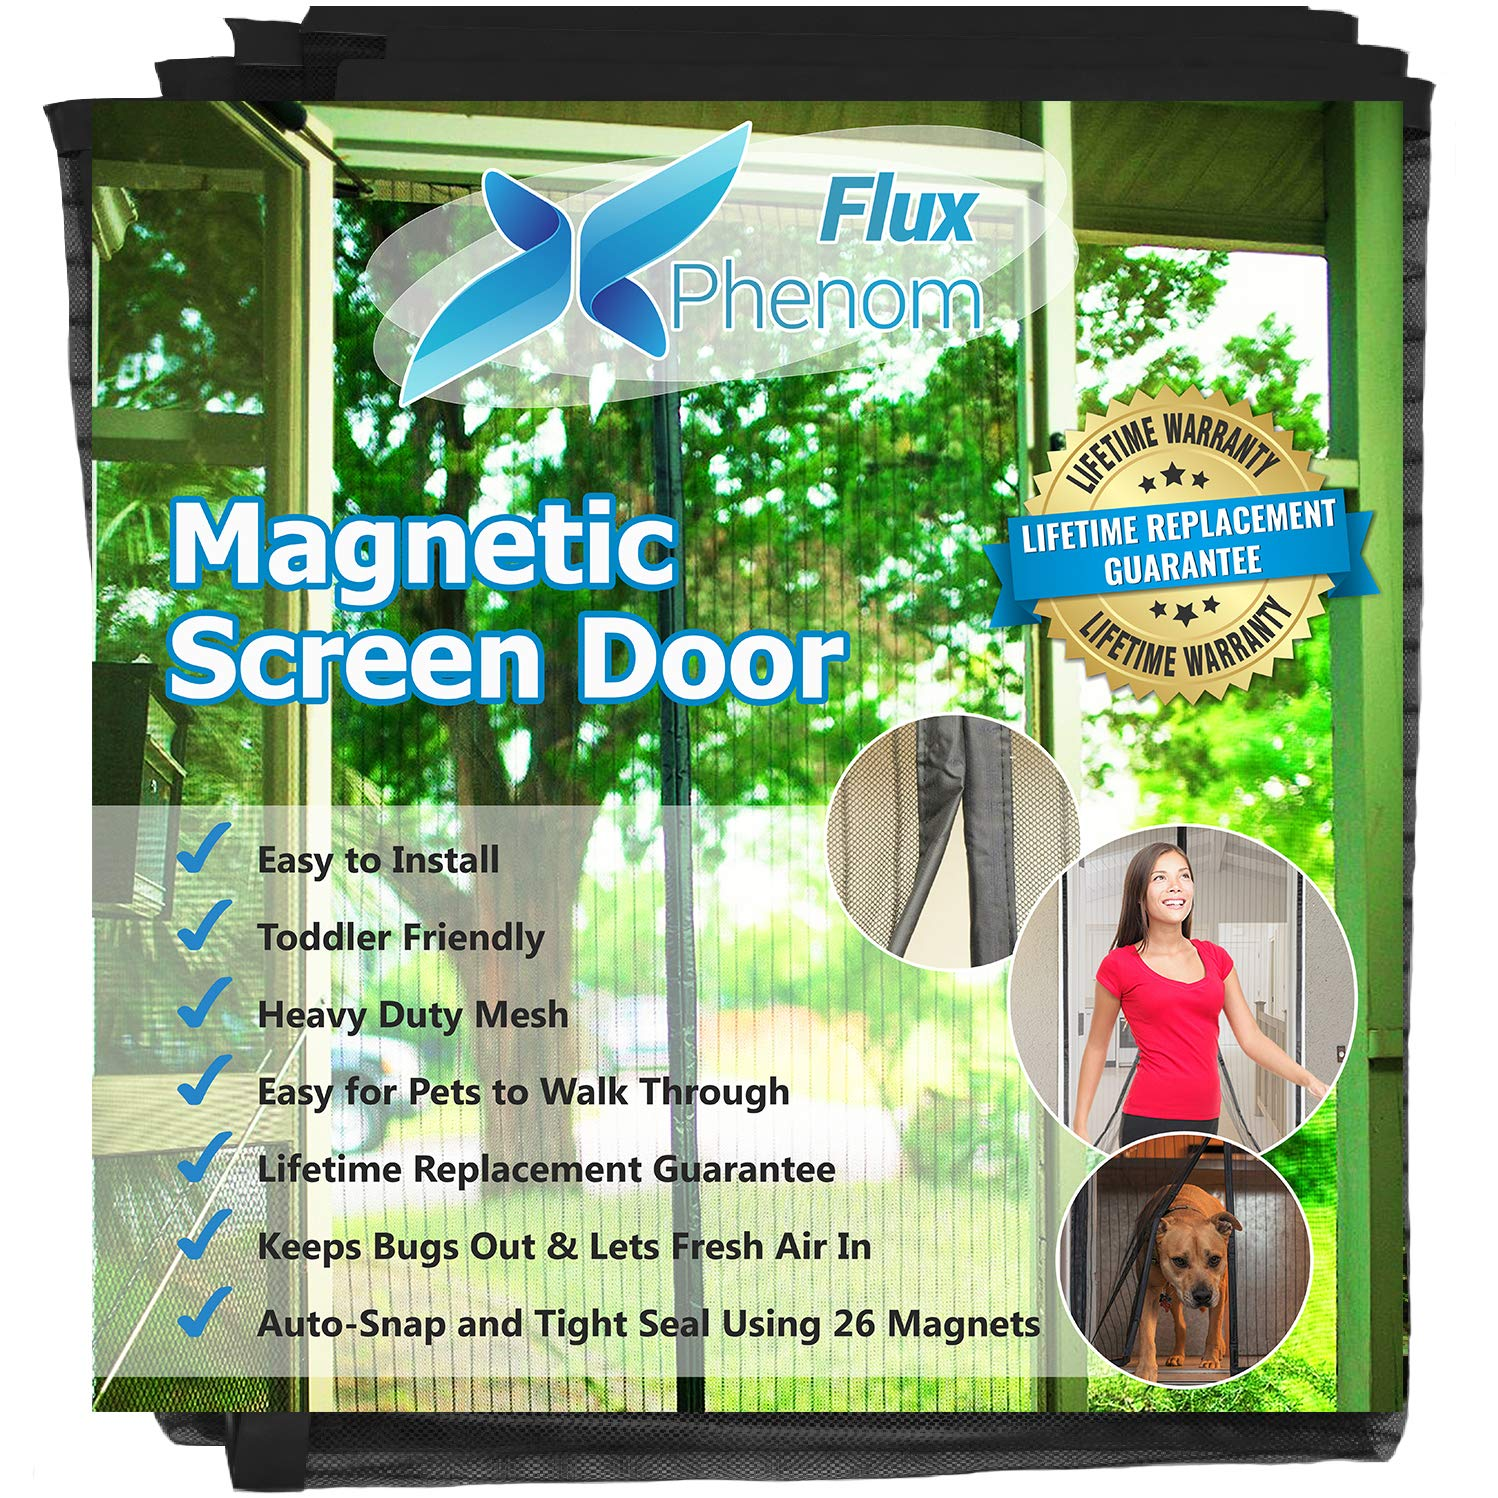 Flux Phenom Reinforced Magnetic Screen Door Fits Doors Up To 38 X